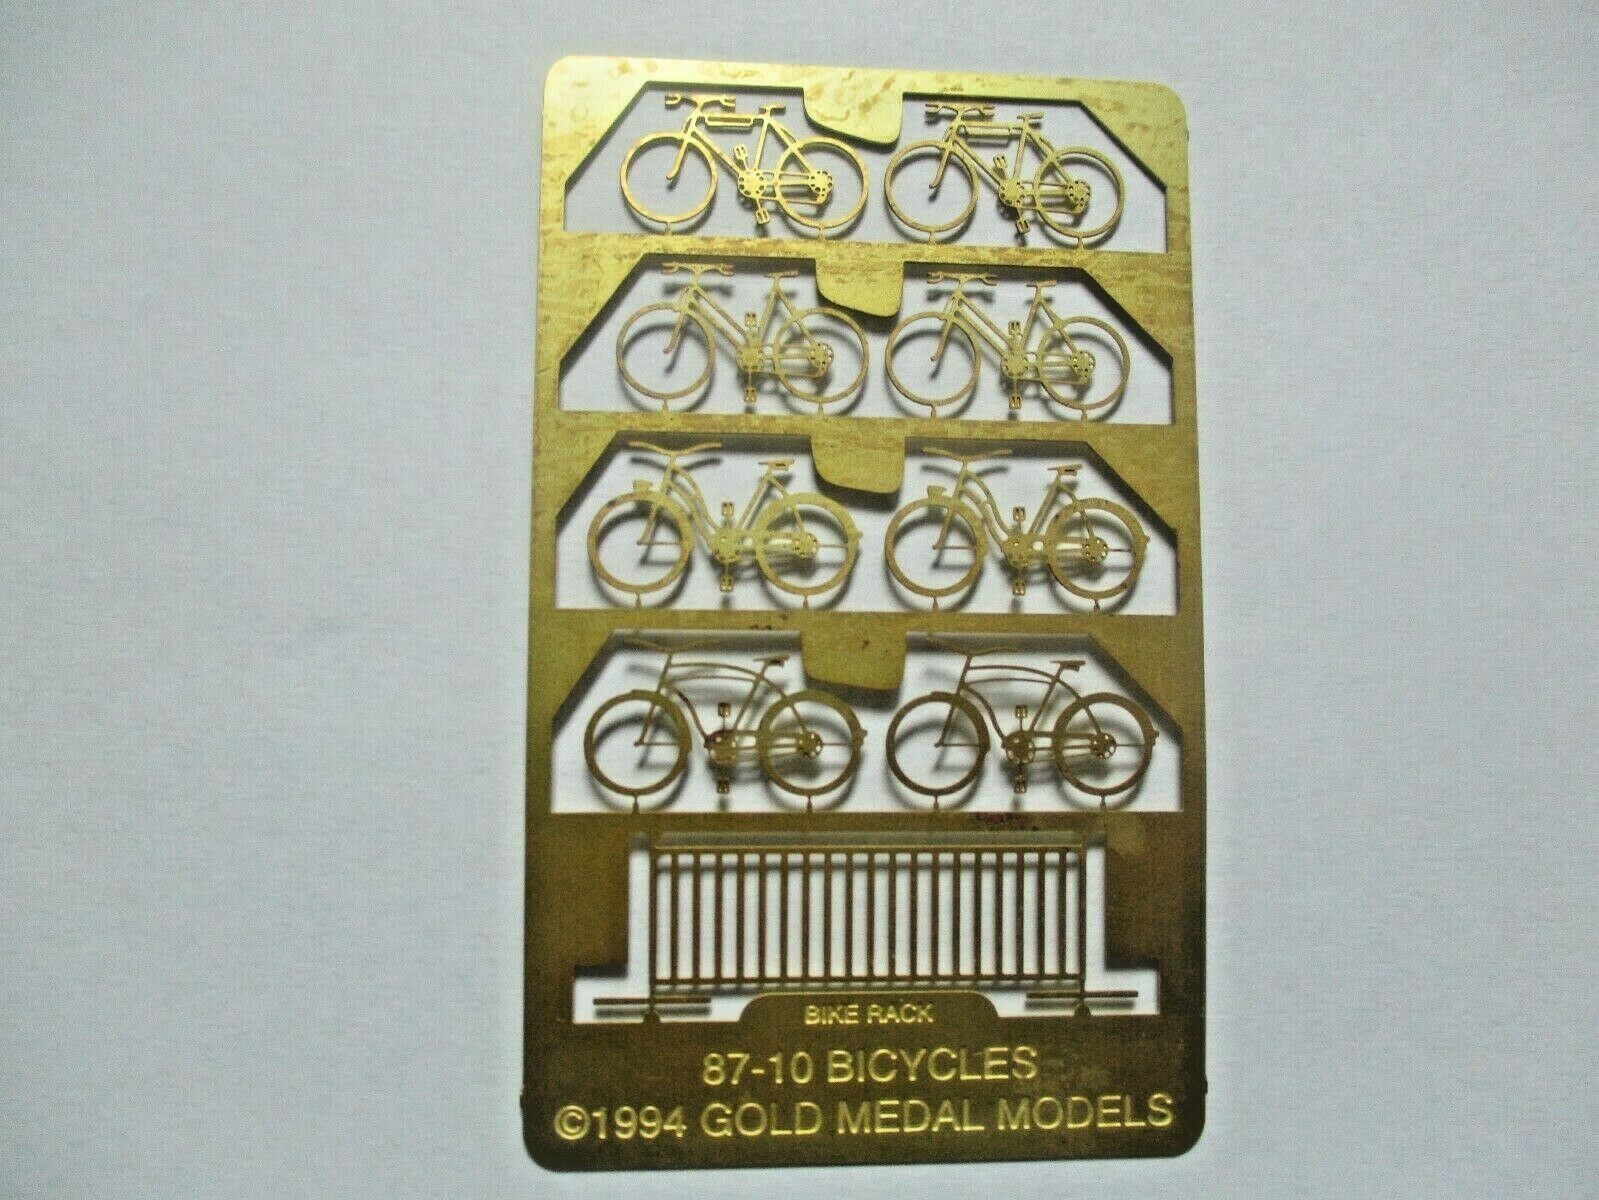 Gold Medal Models # 87-10 Bicycles and Bike Rack HO-Scale